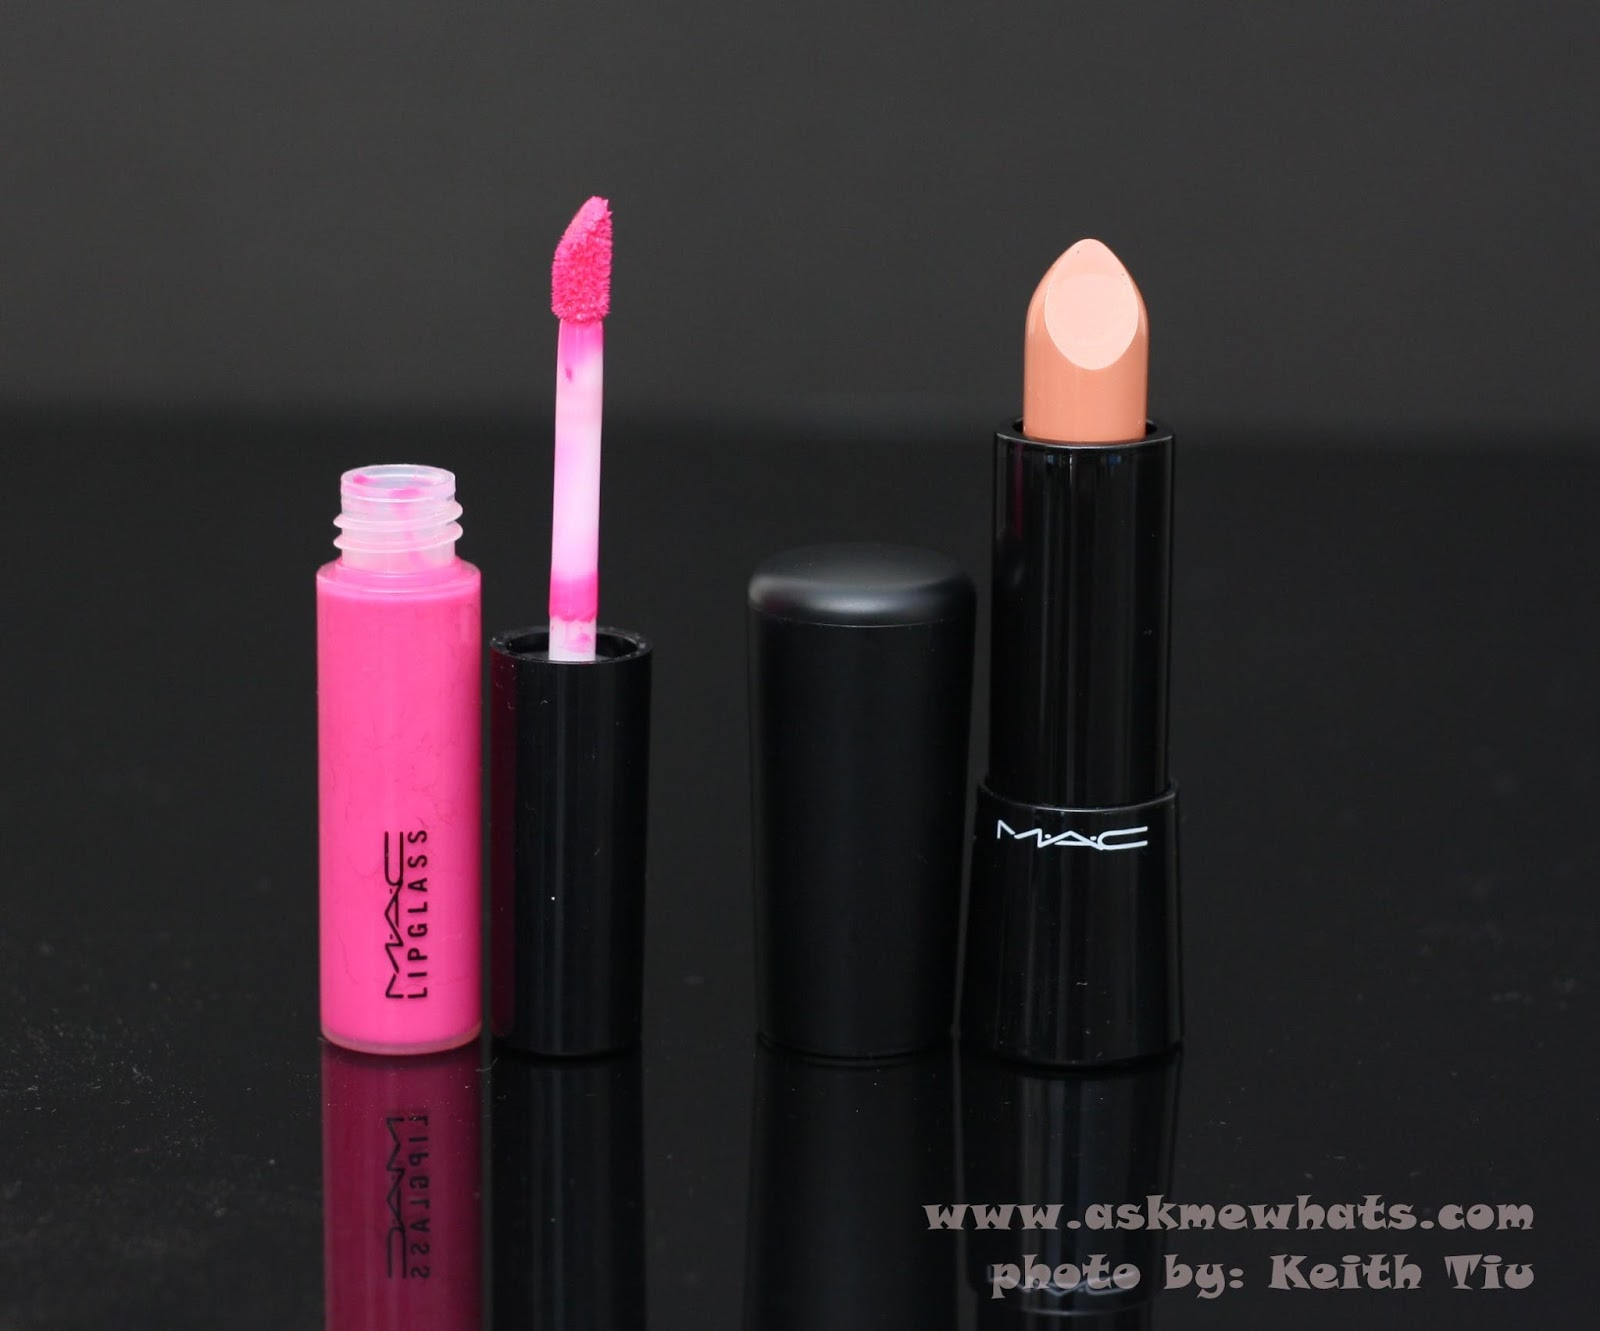 A photo on how to create Korean Gradient Lips/Just Bitten Lips